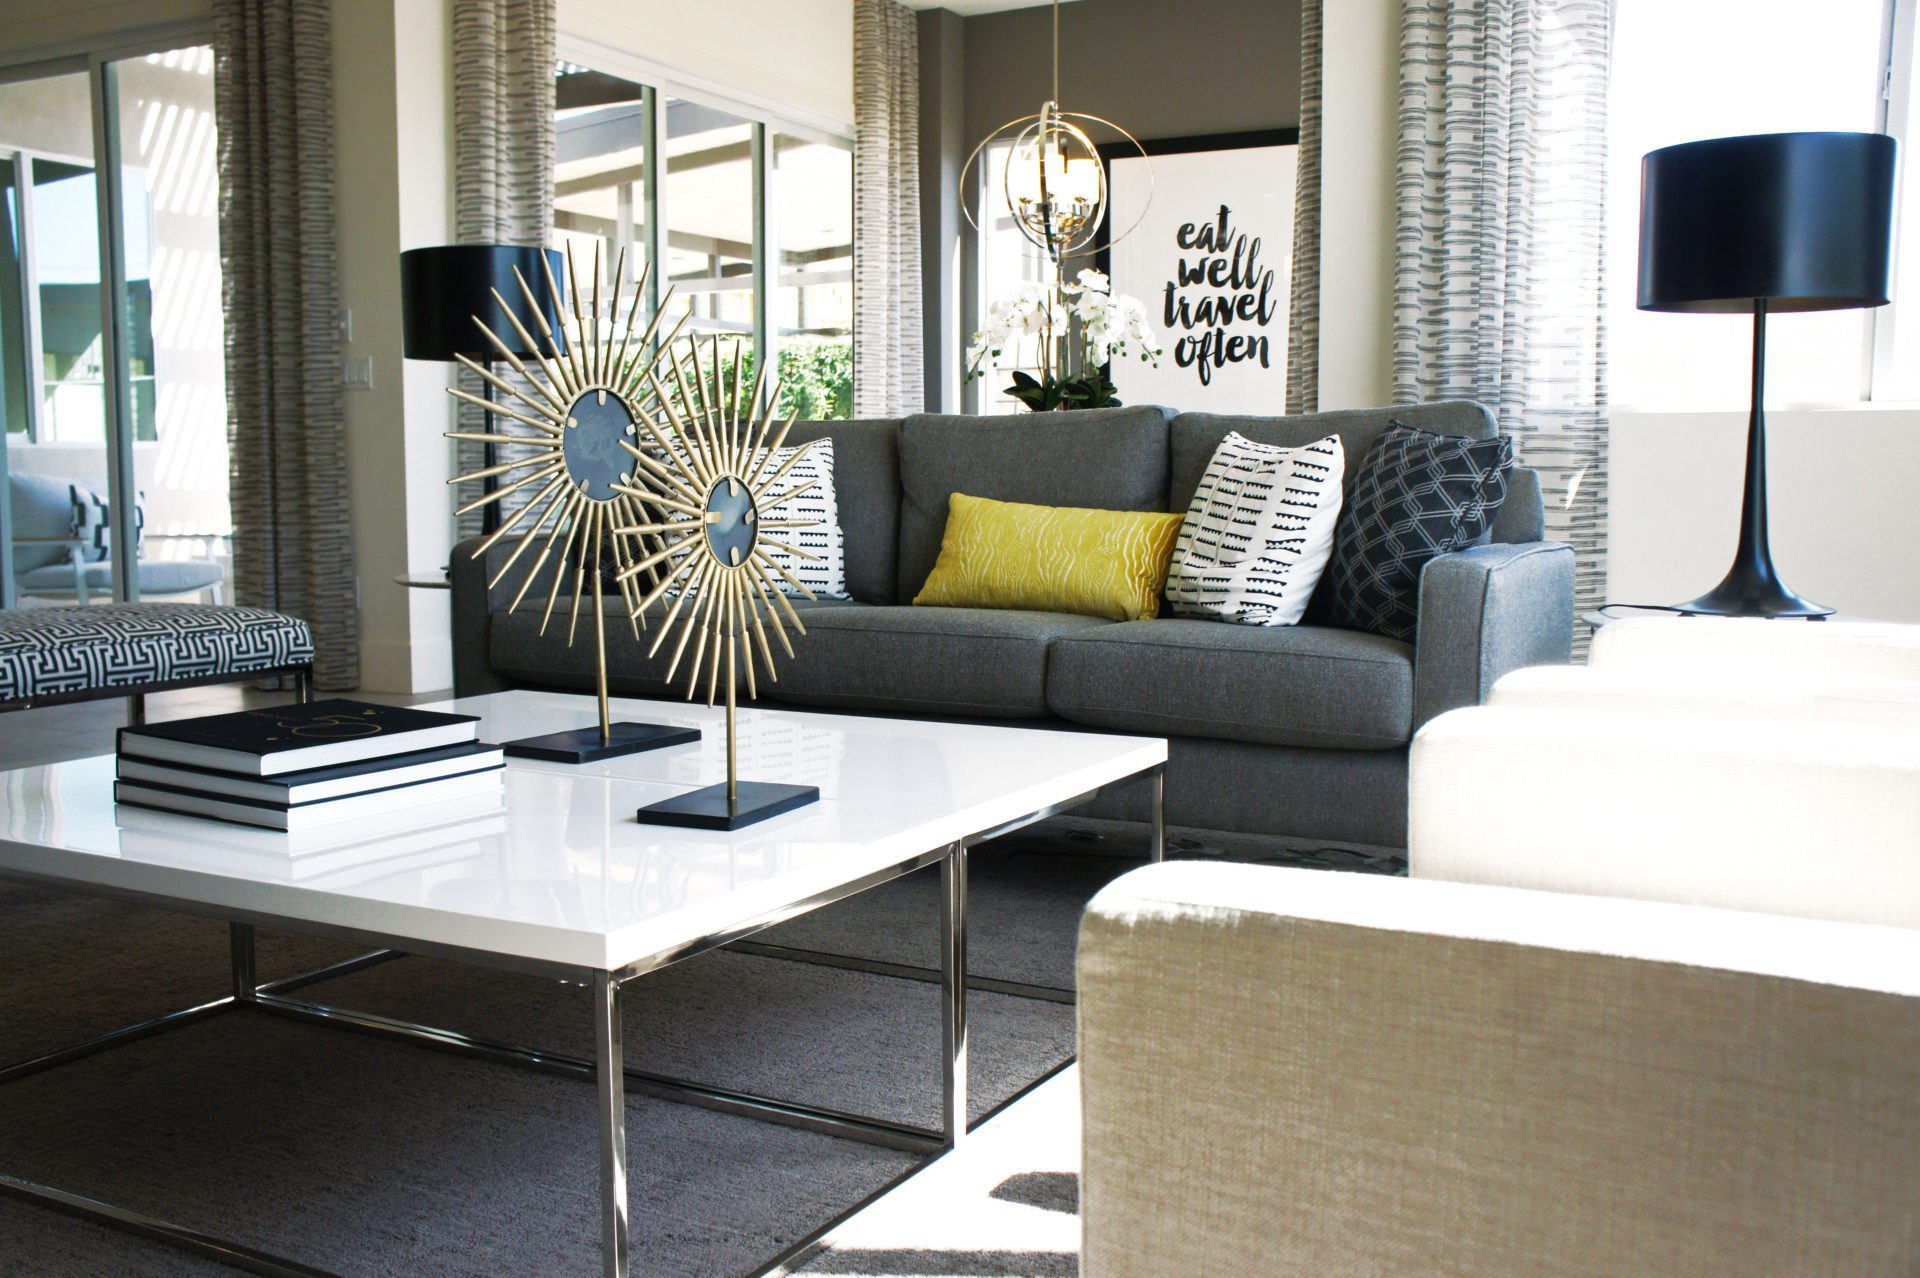 View Image & Residential and Commercial Interior Design Scottsdale AZ   Studio Dwell